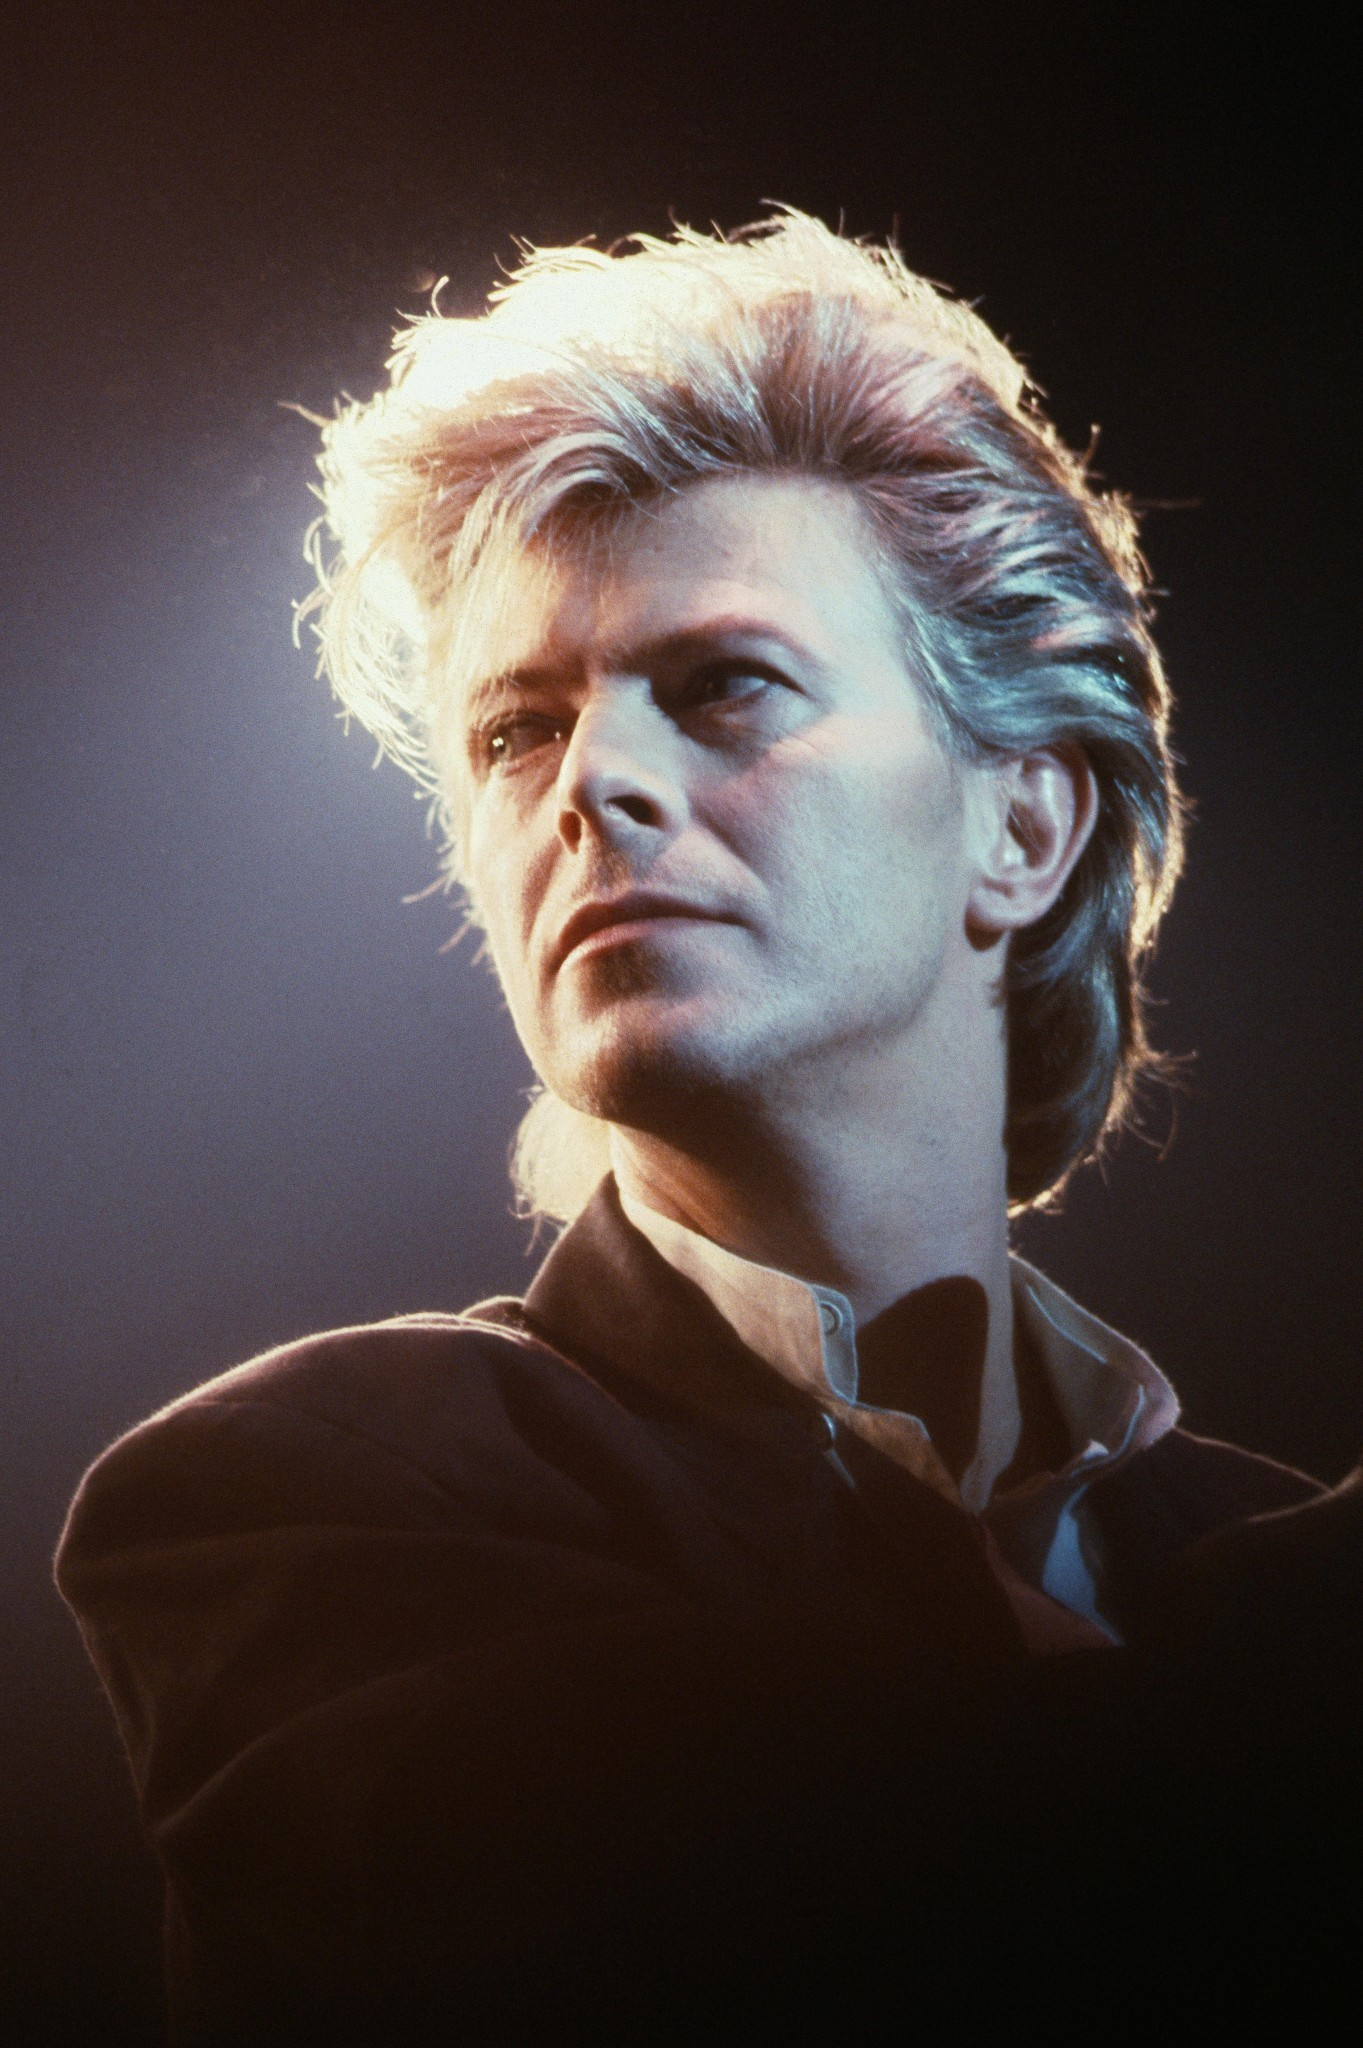 David Bowie: the man who thrilled the world